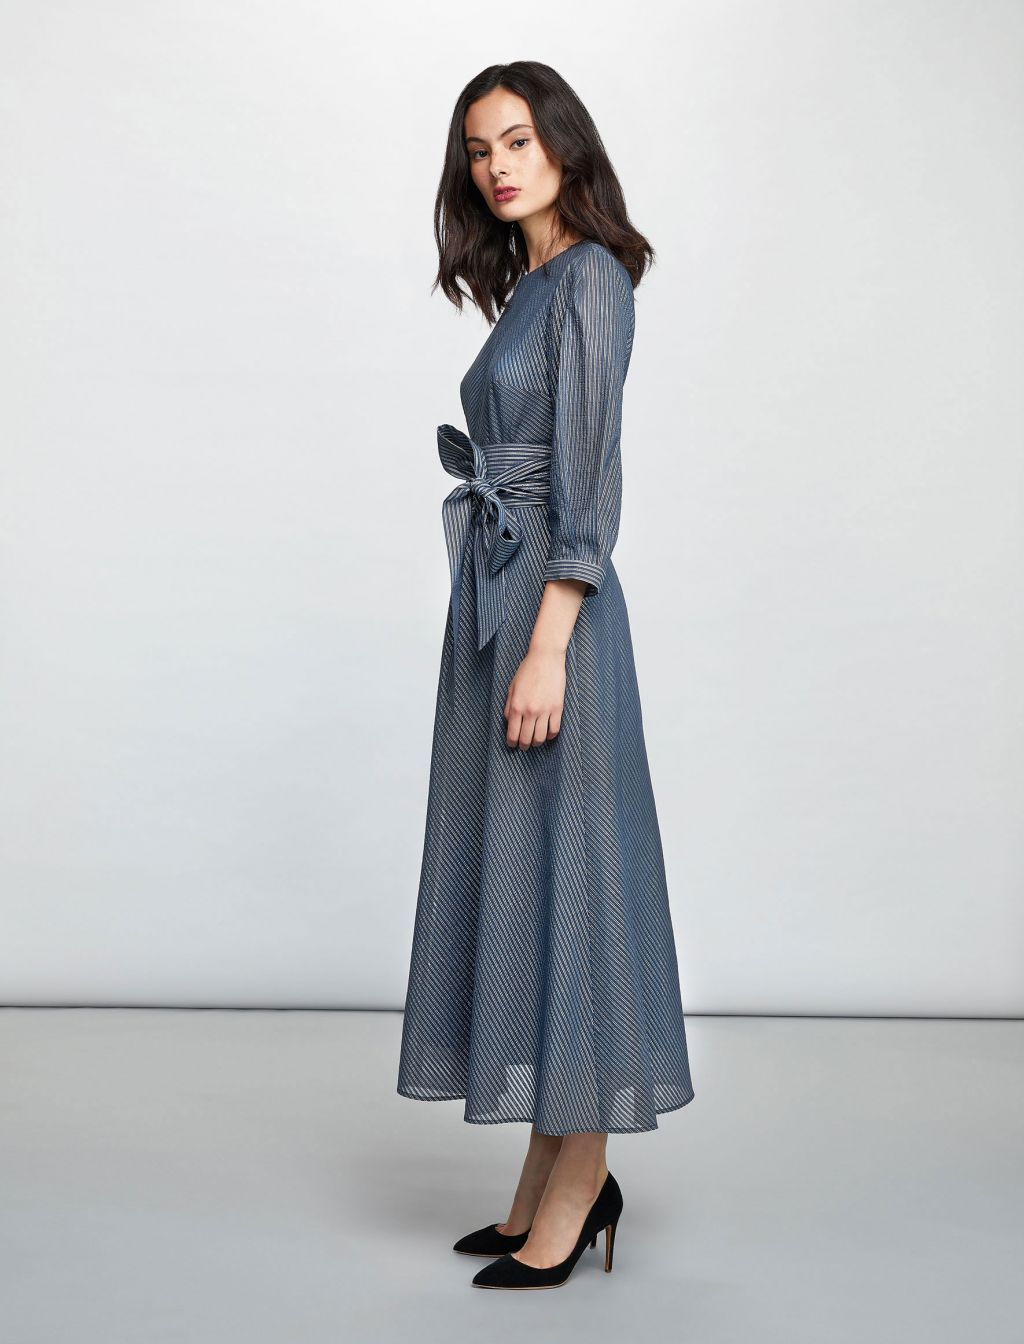 3 4 Sleeve Maxi Dress With Belt Blue Silver Dresses Maxi Dress Blue Long Sleeve Maxi Dress [ 1344 x 1024 Pixel ]